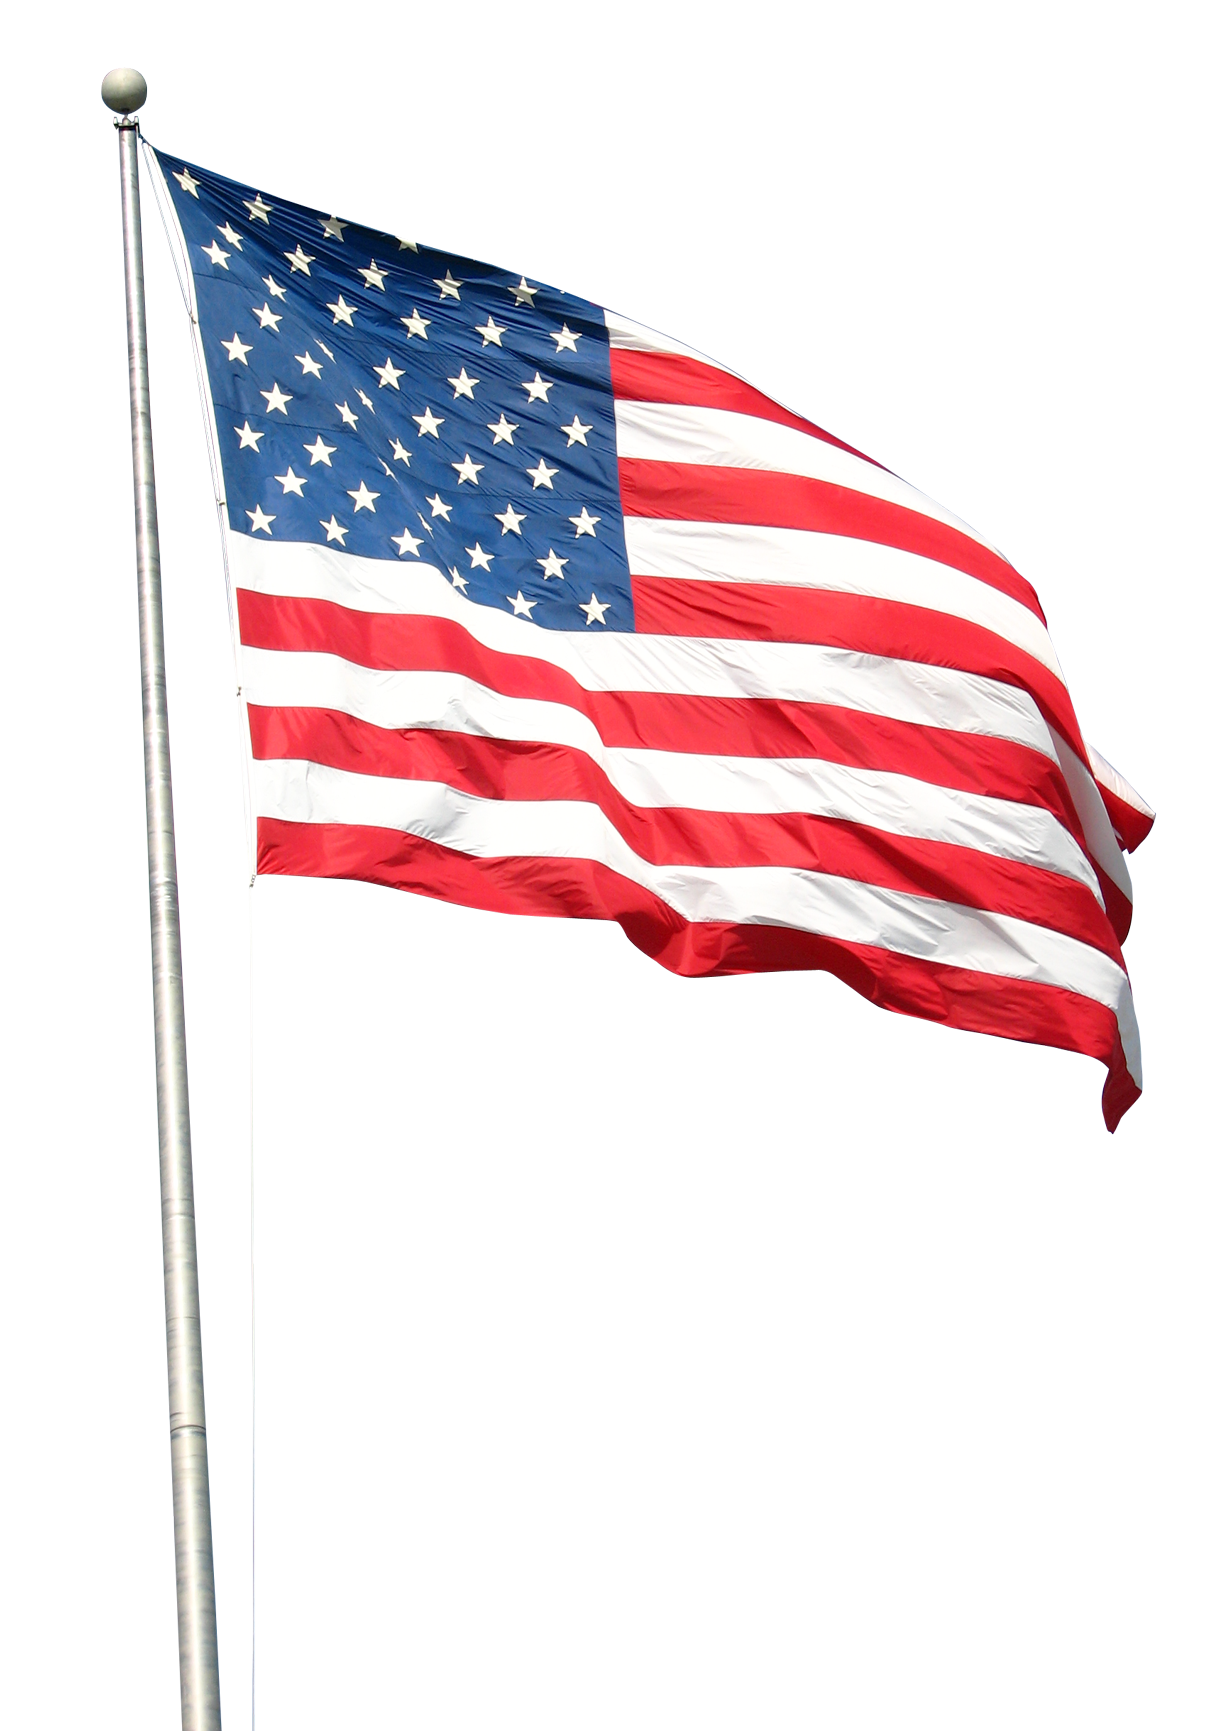 American flag on pole png. Pngpix com transparent image